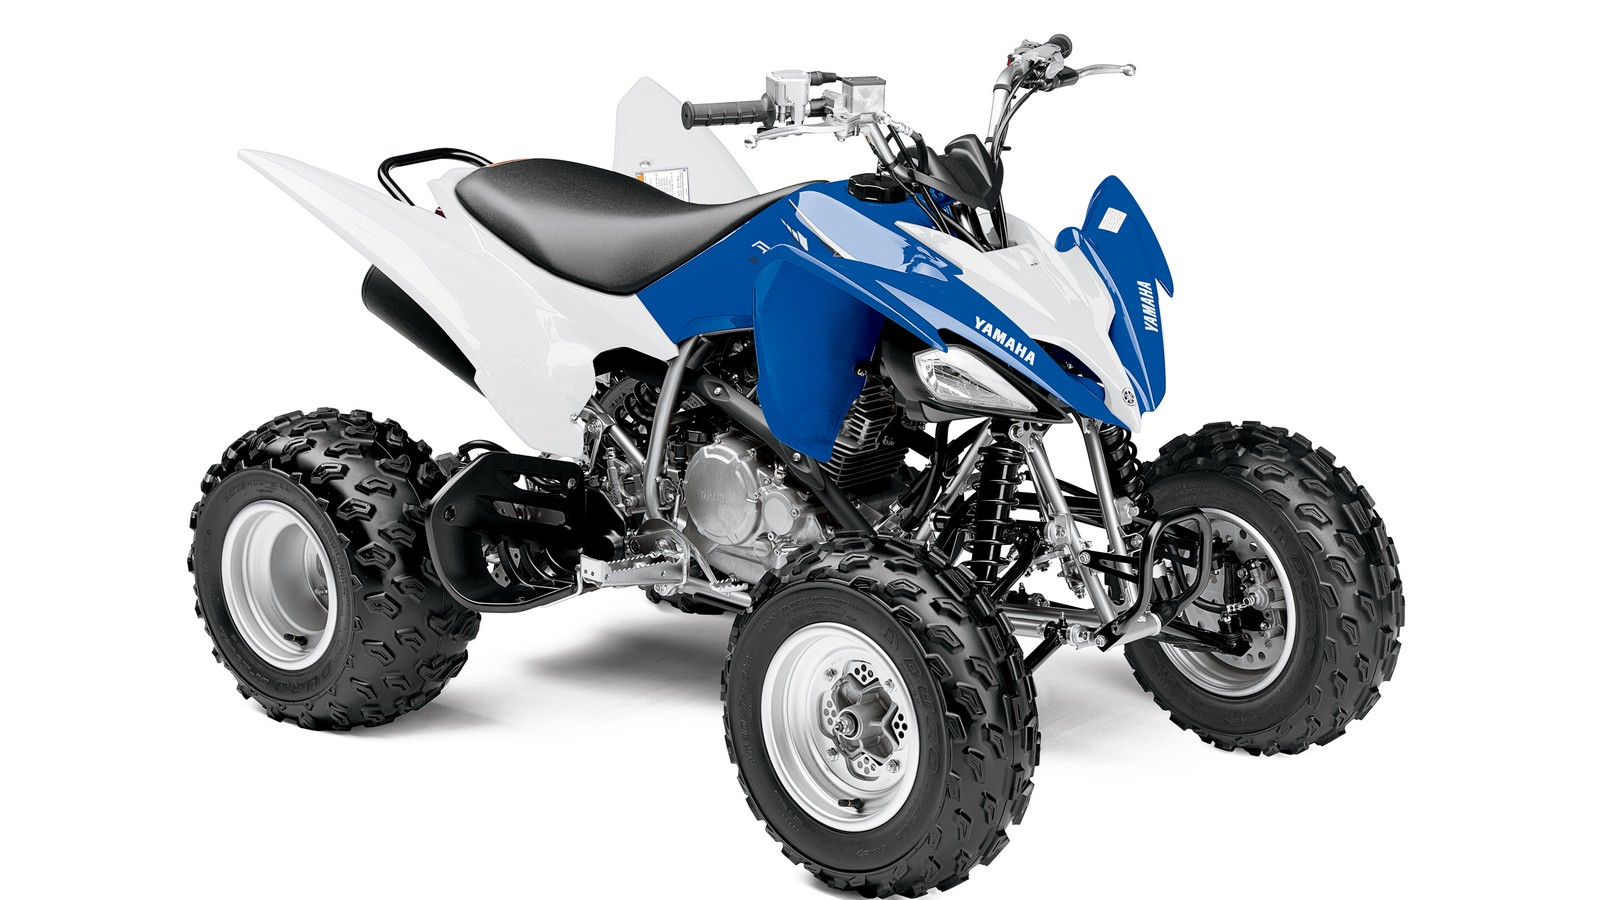 Yamaha Wolverine For Sale >> 2013 Yamaha Raptor 250 Pictures, Photos, Wallpapers. | Top Speed